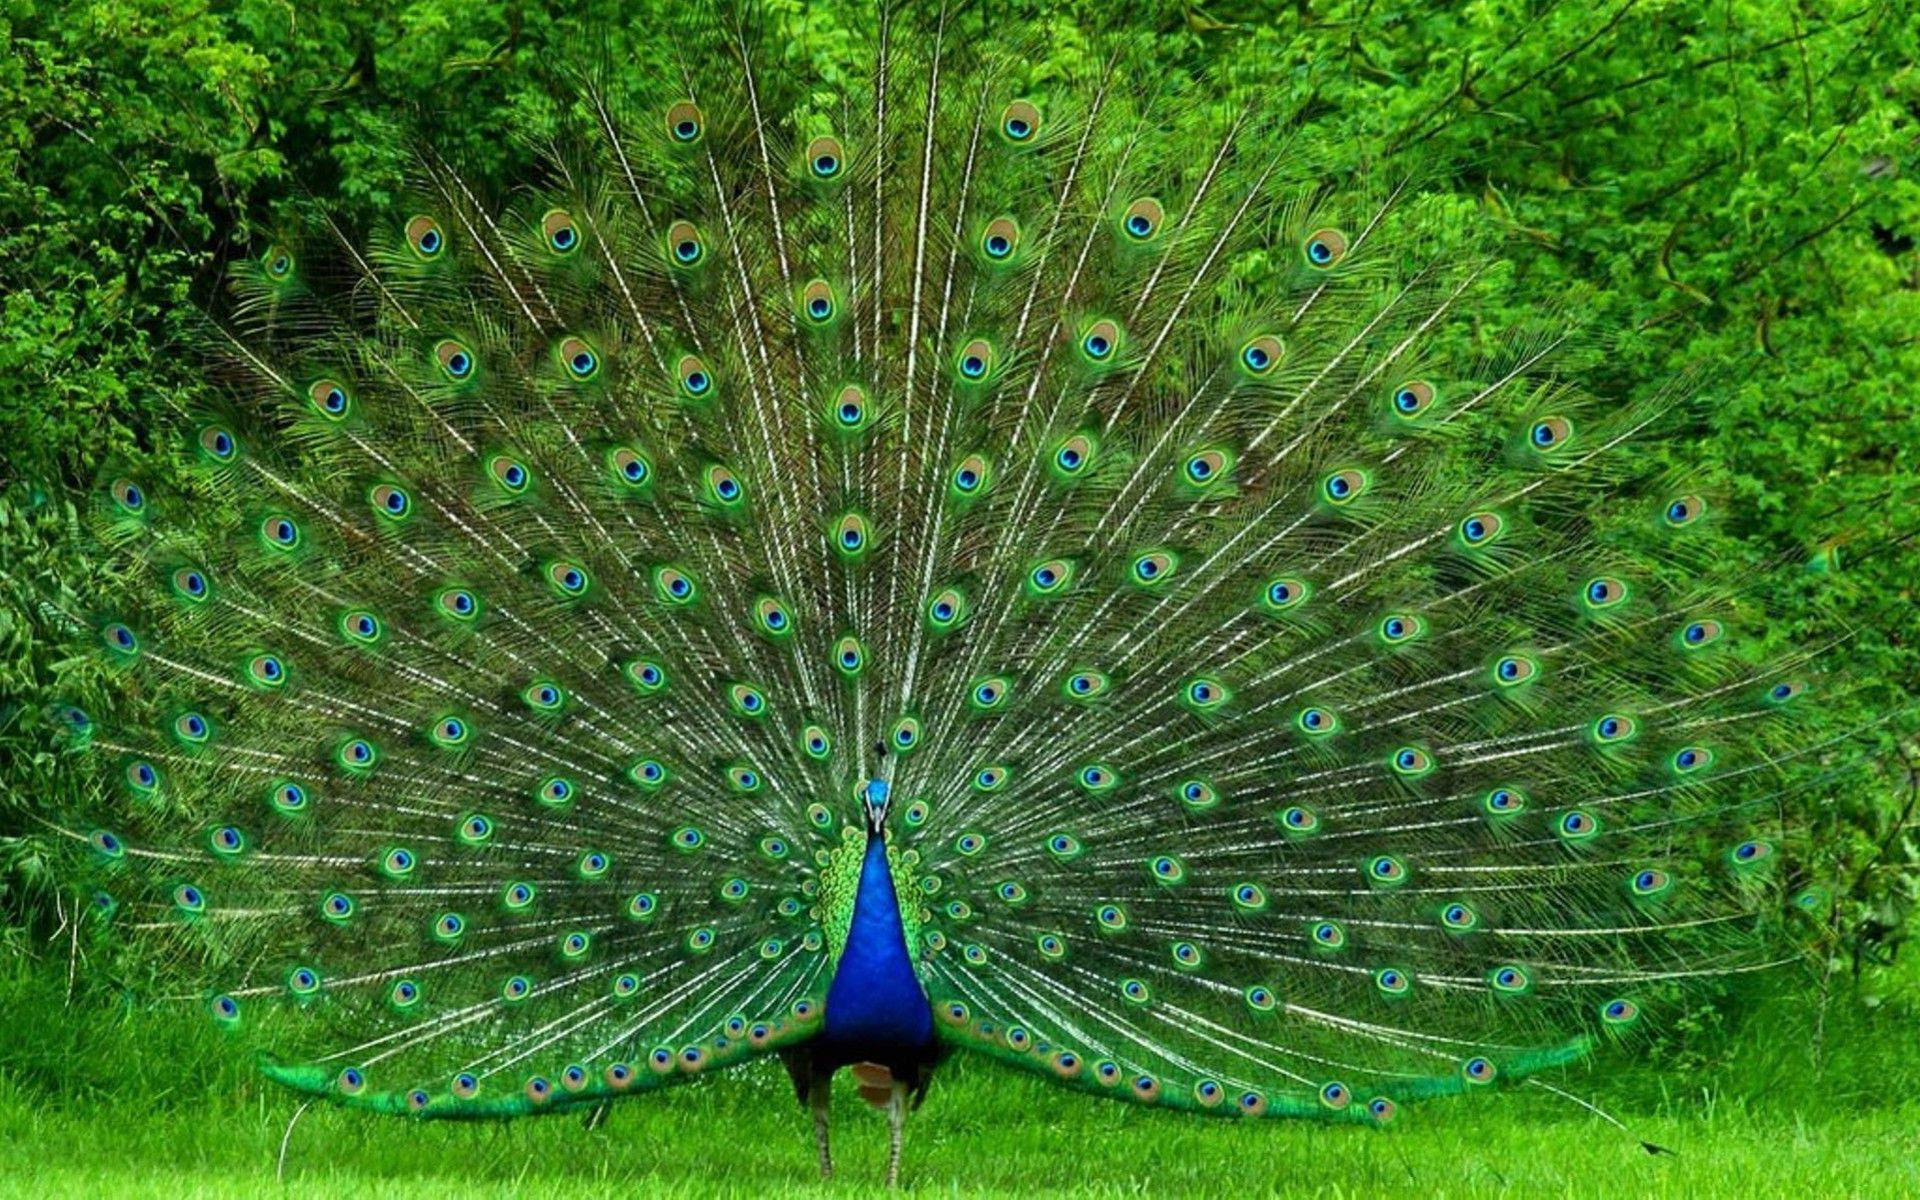 Peacock Feathers HD Wallpaper